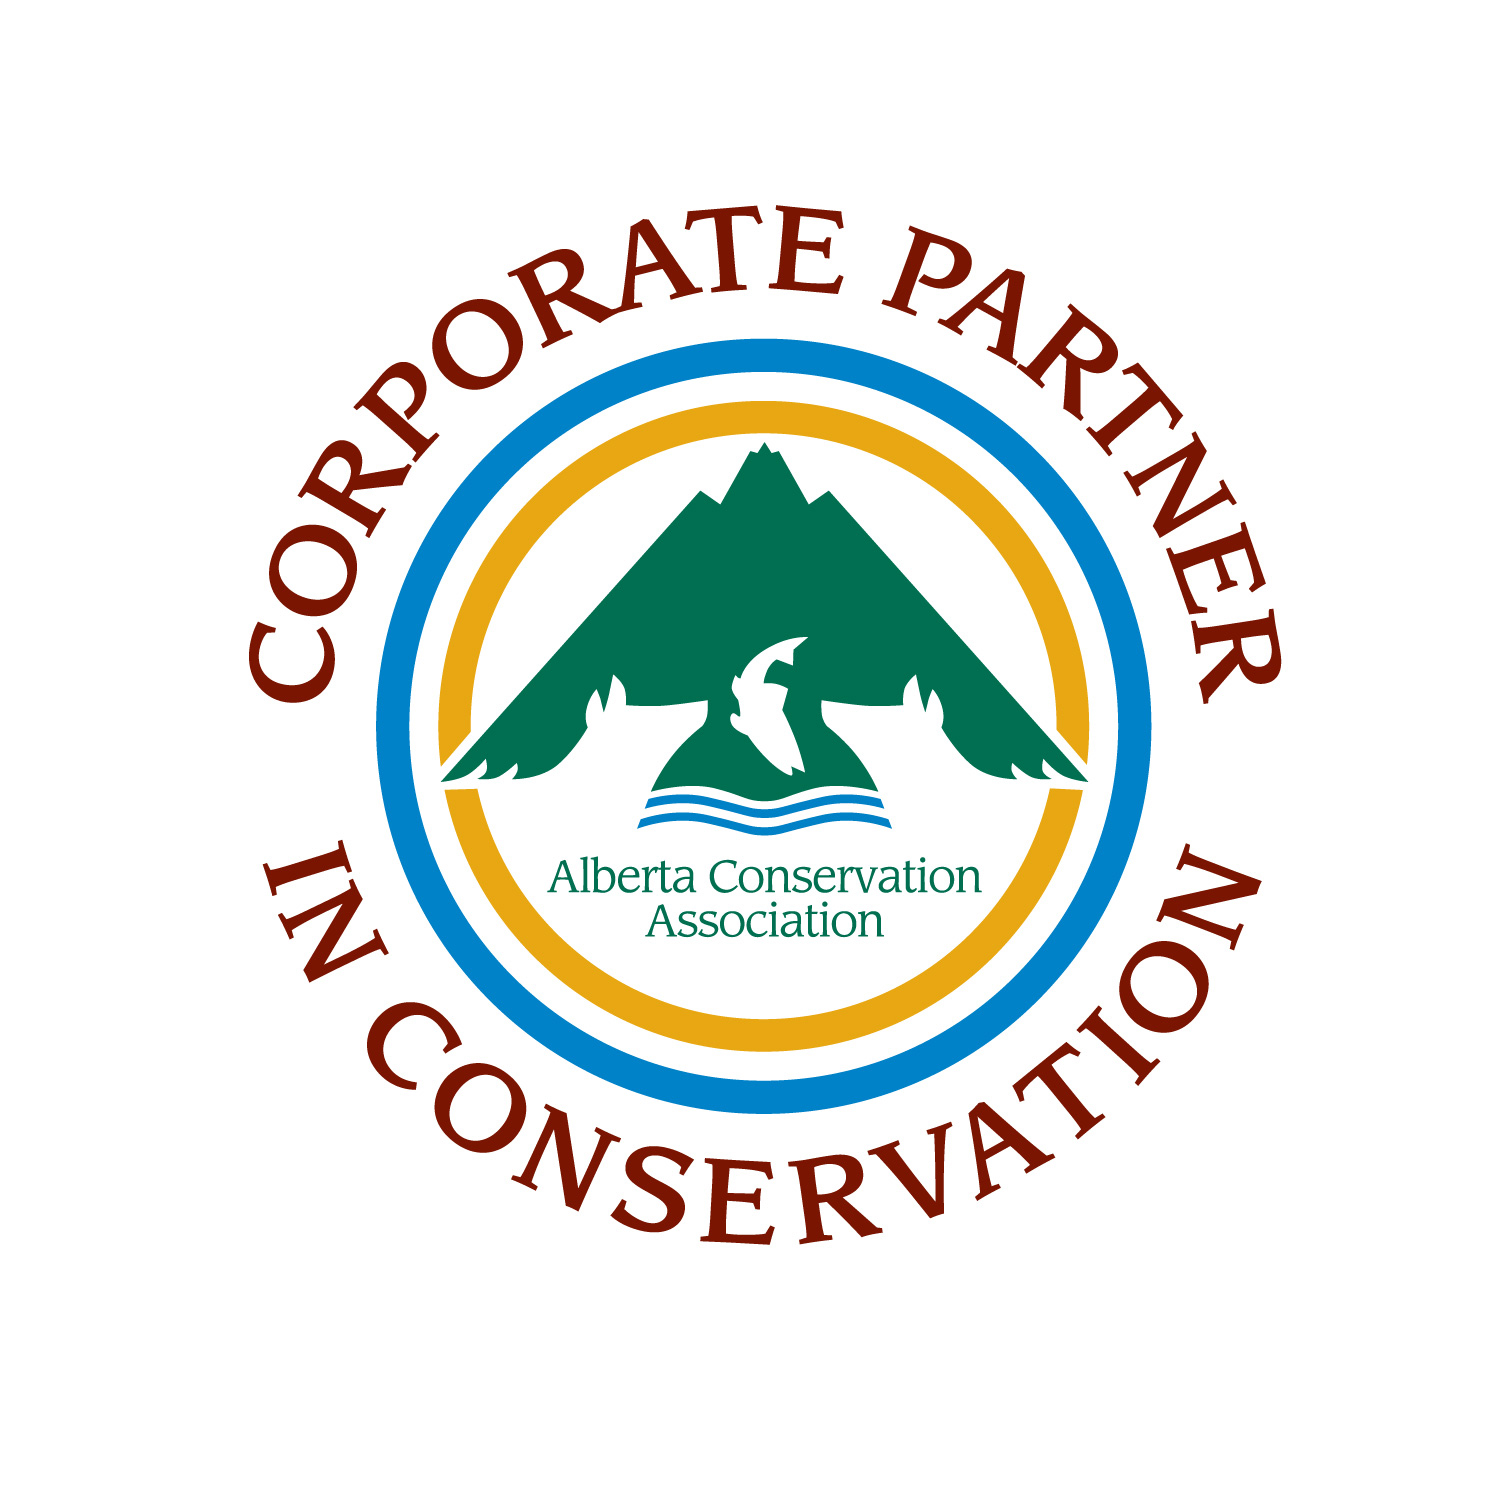 Alberta Conservation Association Corporate Partner in Conservation logo